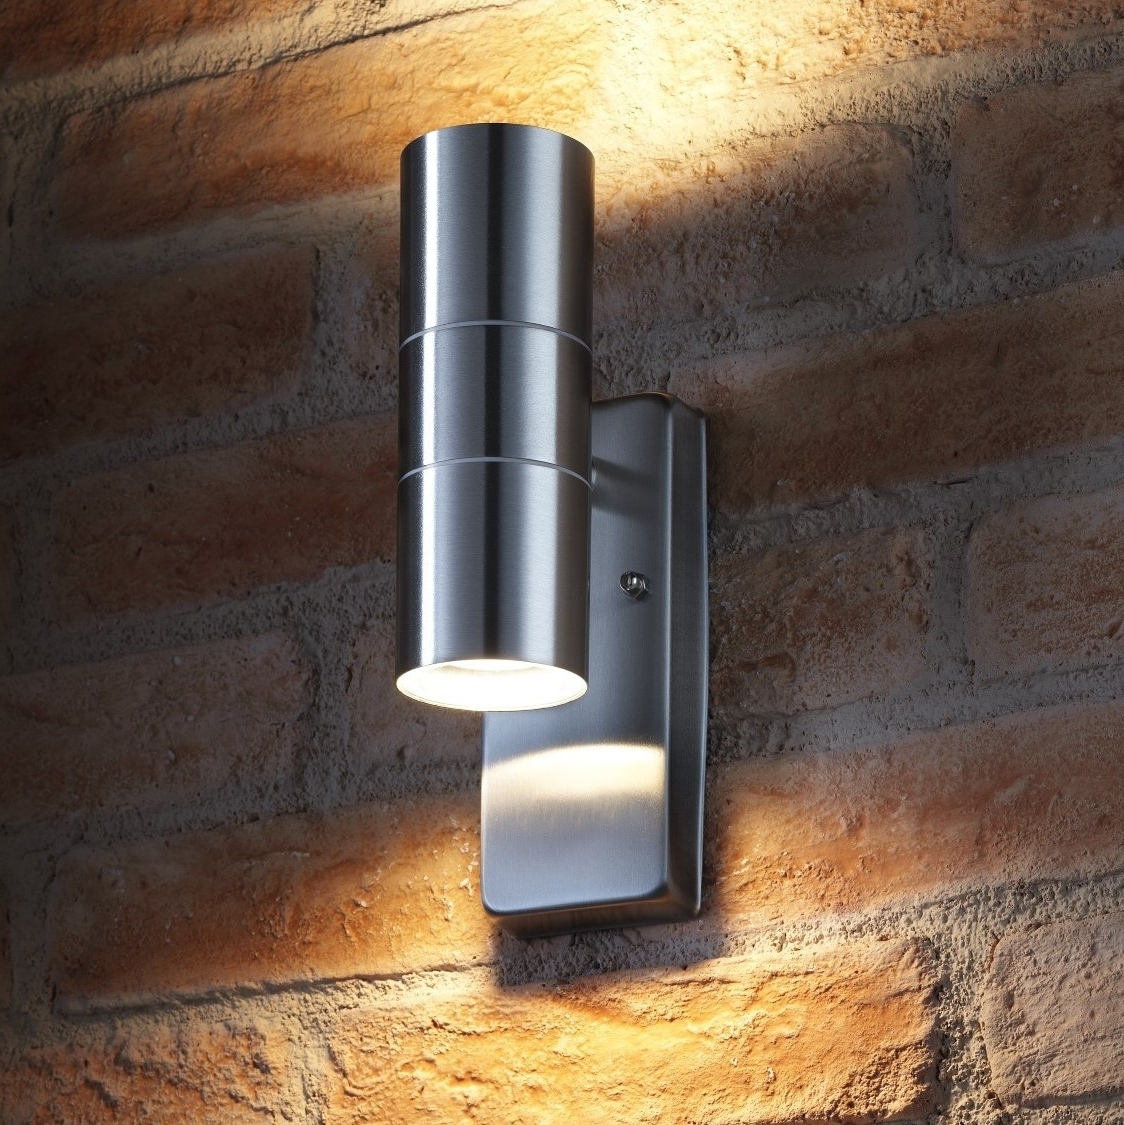 Auraglow Dusk Till Dawn Sensor Up & Down Outdoor Wall Light Within Favorite Up And Down Outdoor Wall Lighting (View 7 of 20)